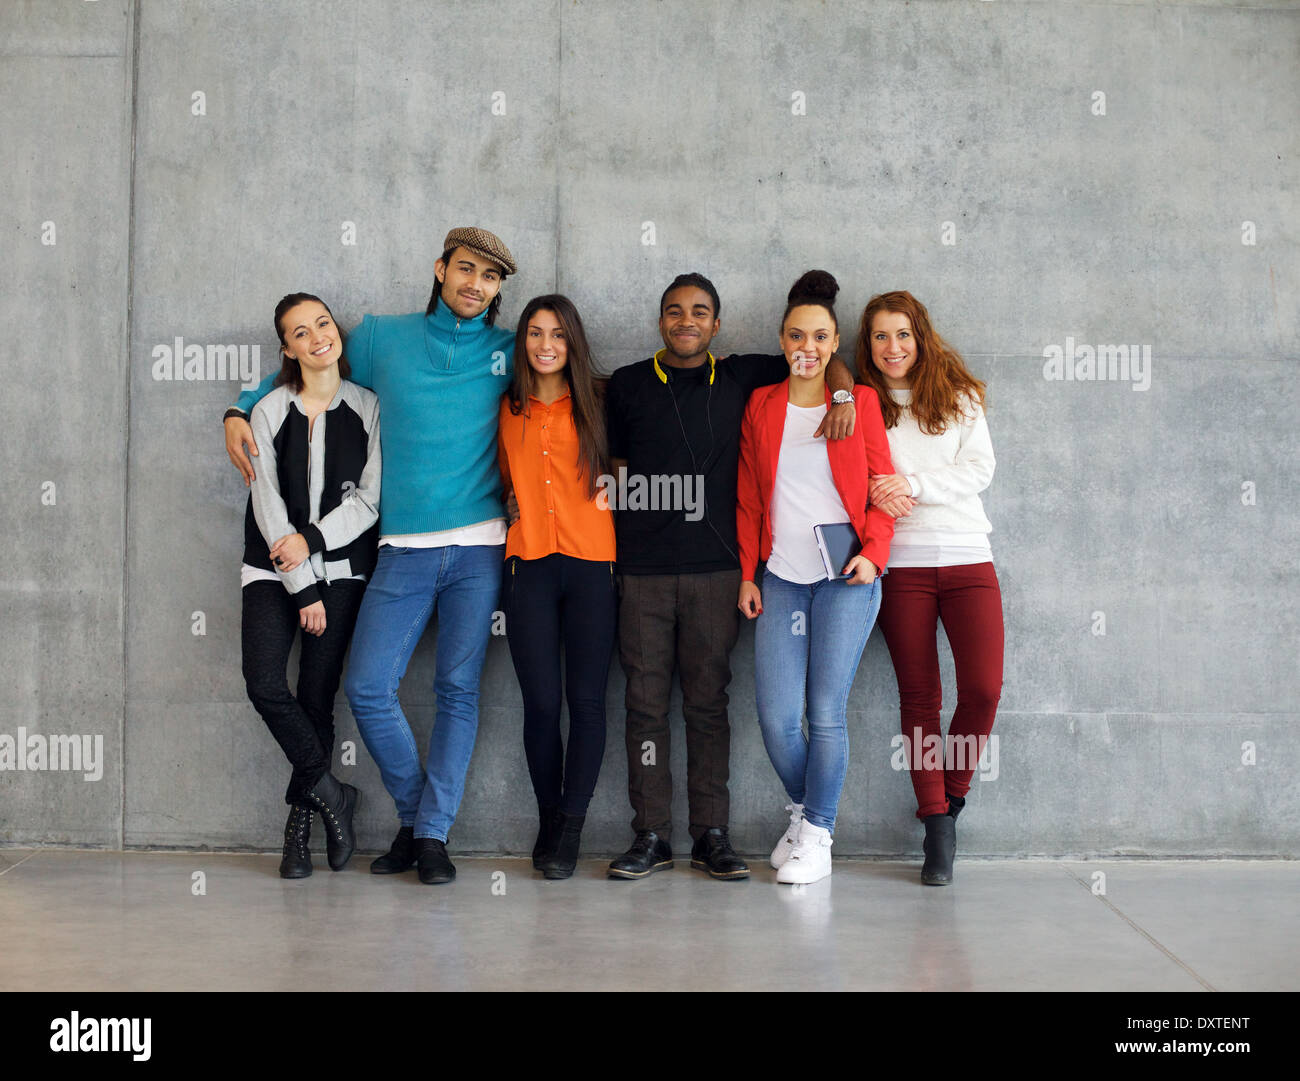 Group of stylish young university students on campus. Multiracial young people standing together against wall in college. - Stock Image